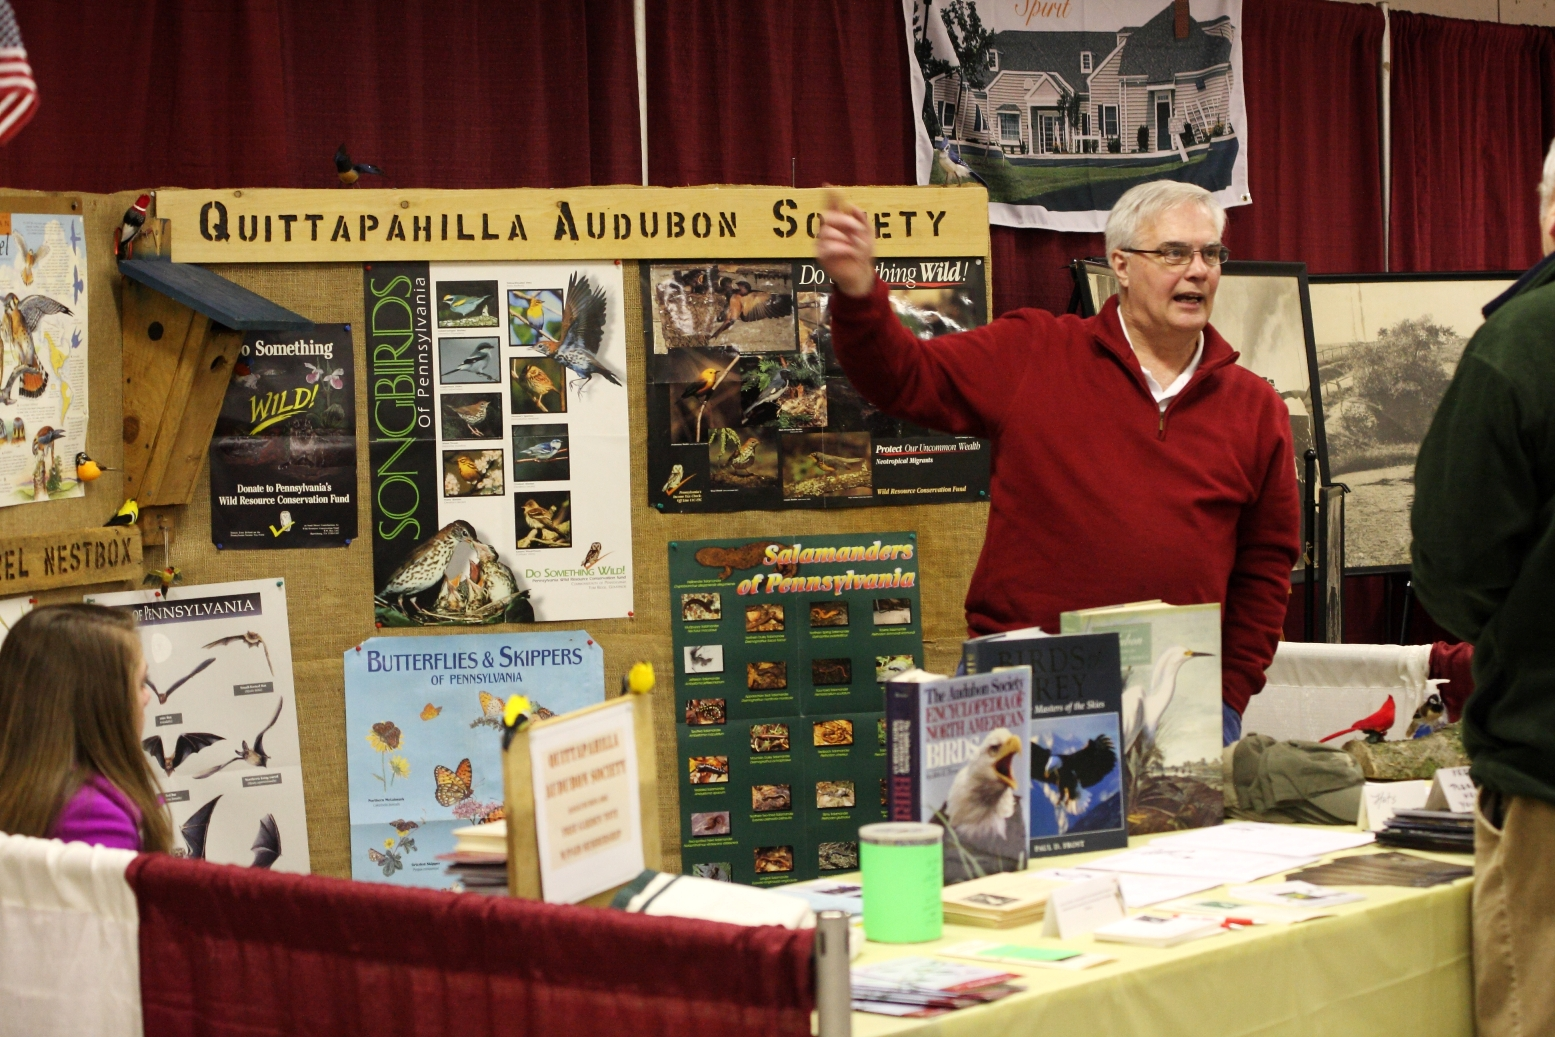 Quittapahilla Audubon Society Booth